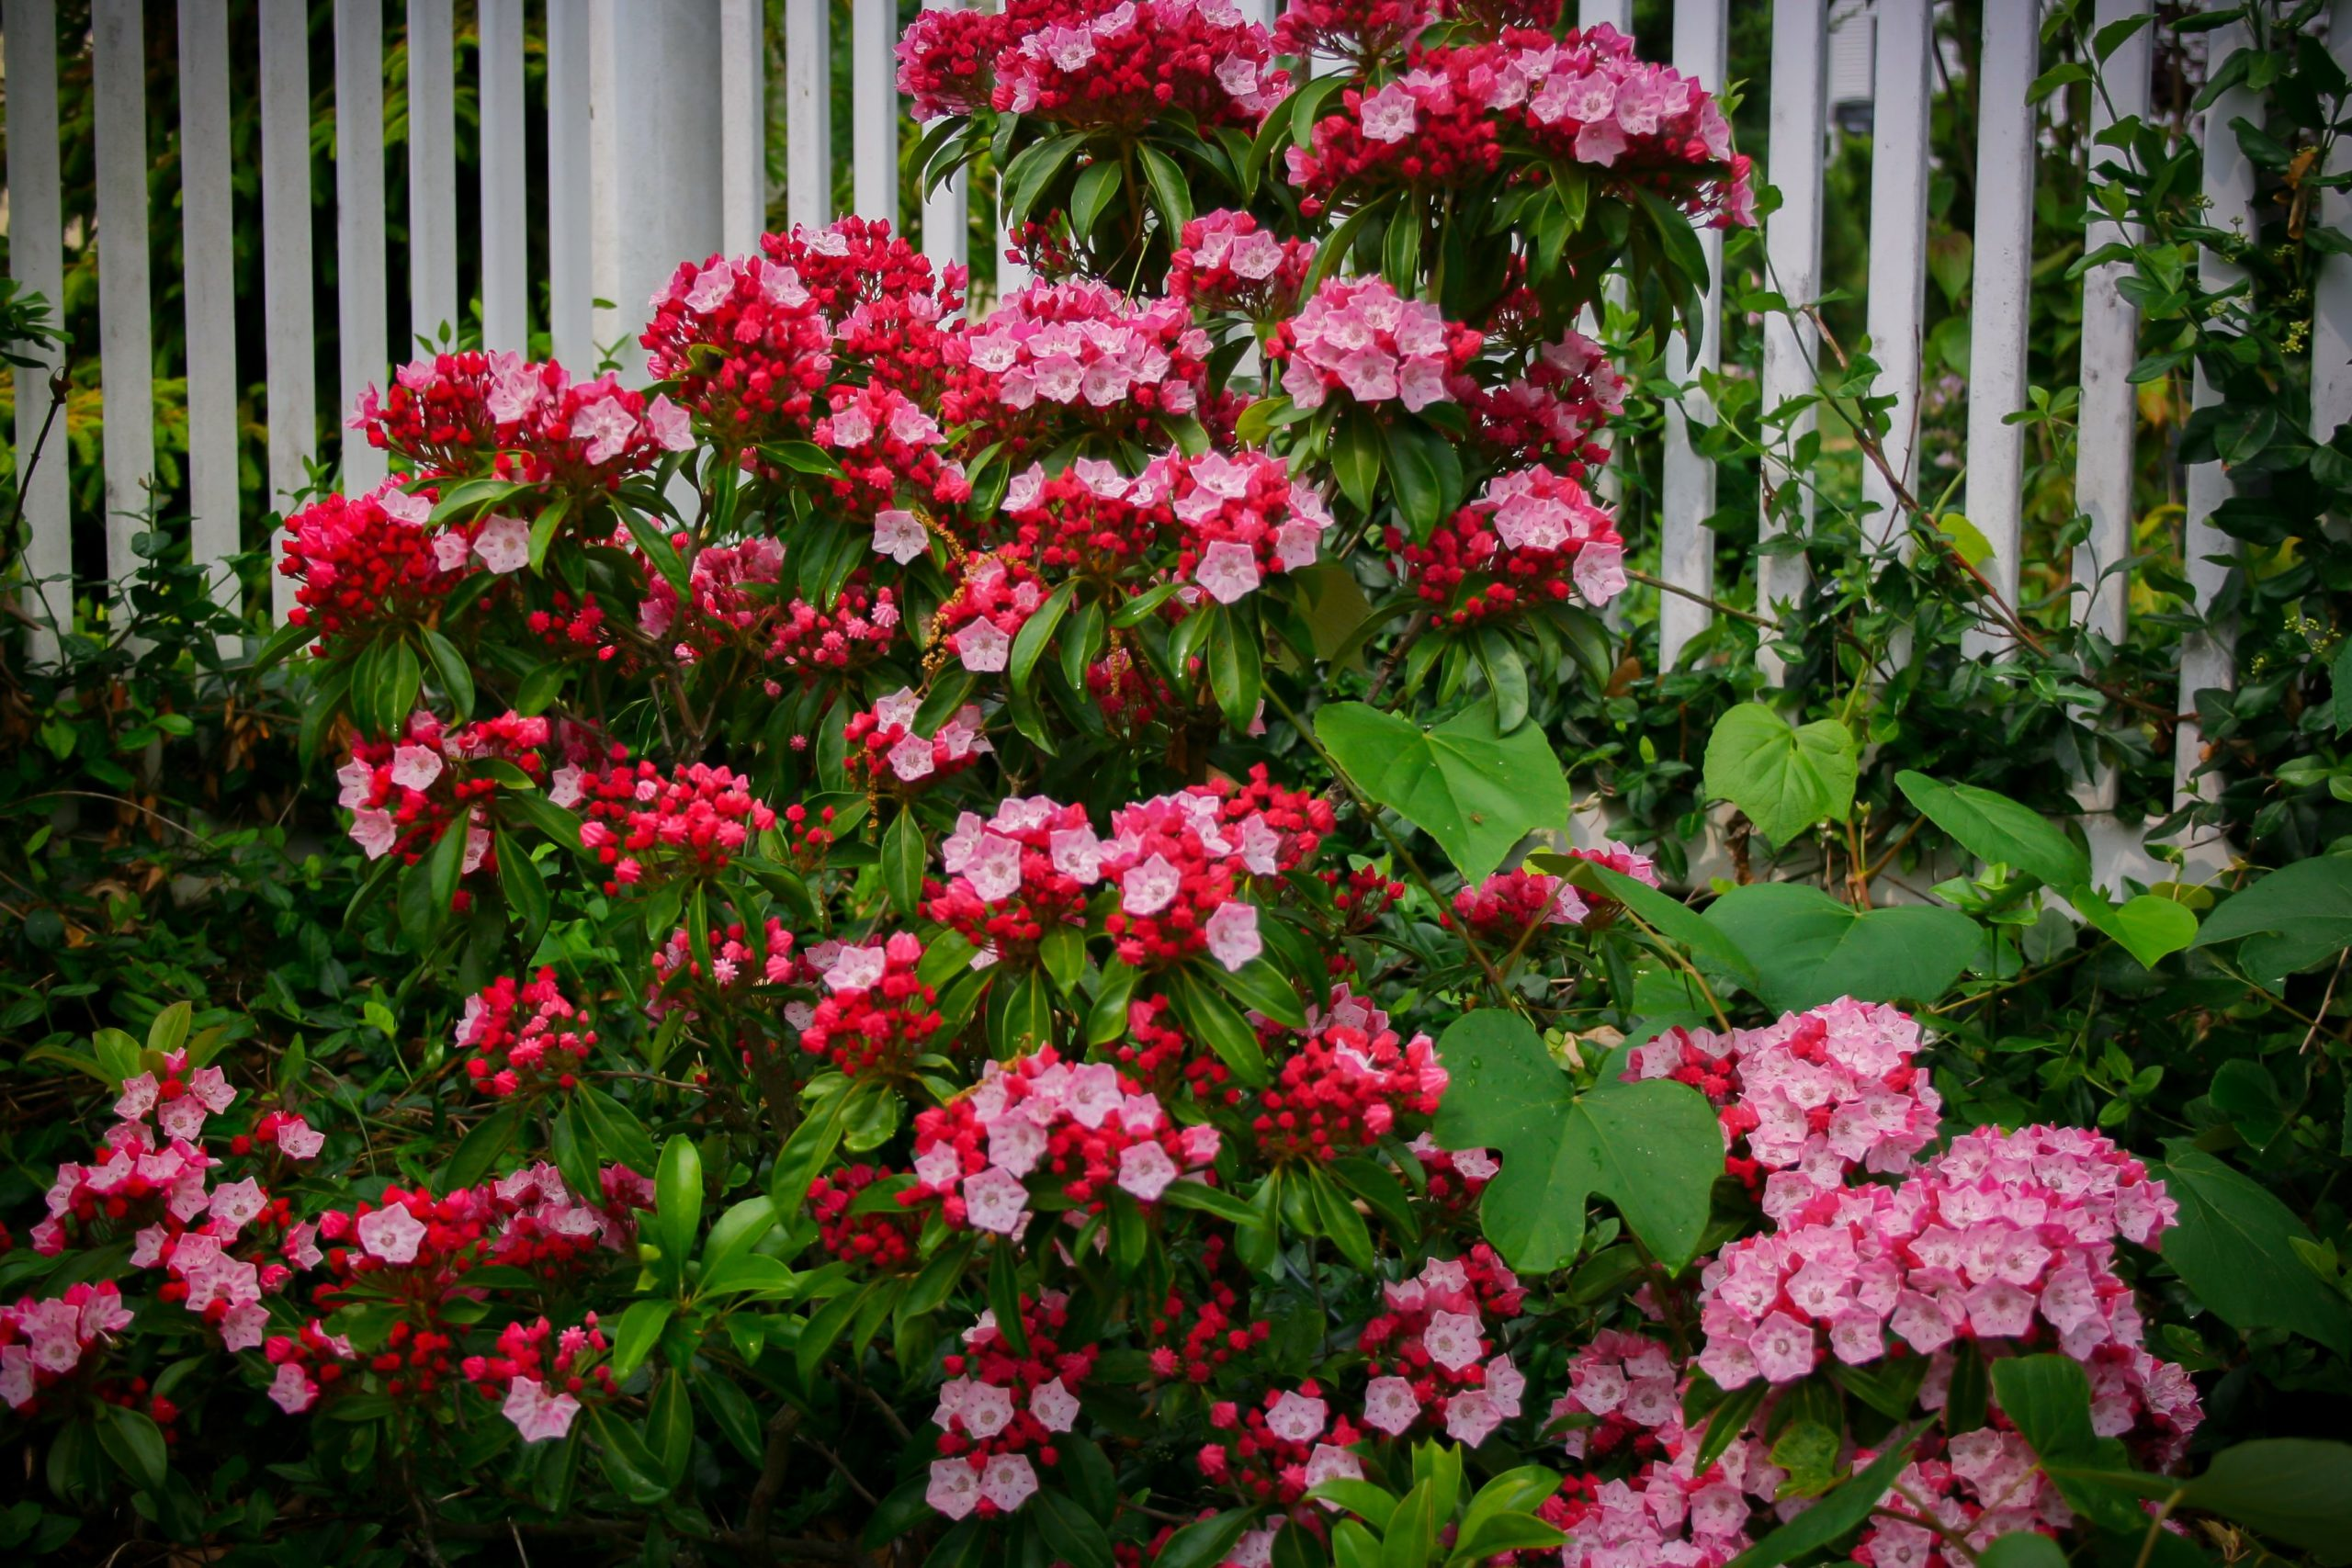 Olympic Fire Mountain Laurel Shrubs For Sale Online The Tree Center